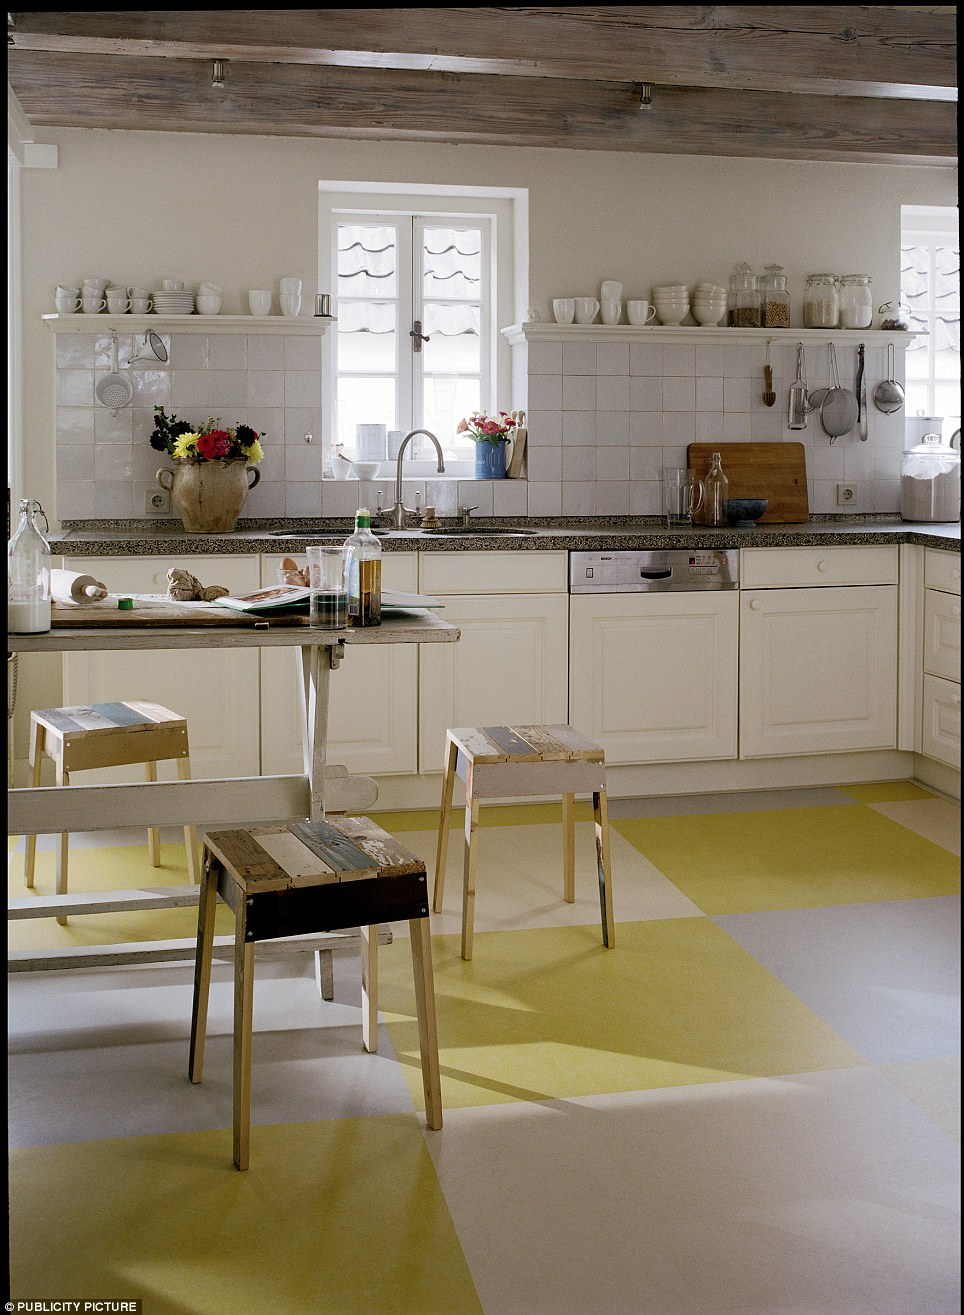 Mixing hygiene and design the modern kitchen would look somewhat naked without linoleum, which first came into existence in 1860 and was invented by Frederick Walton